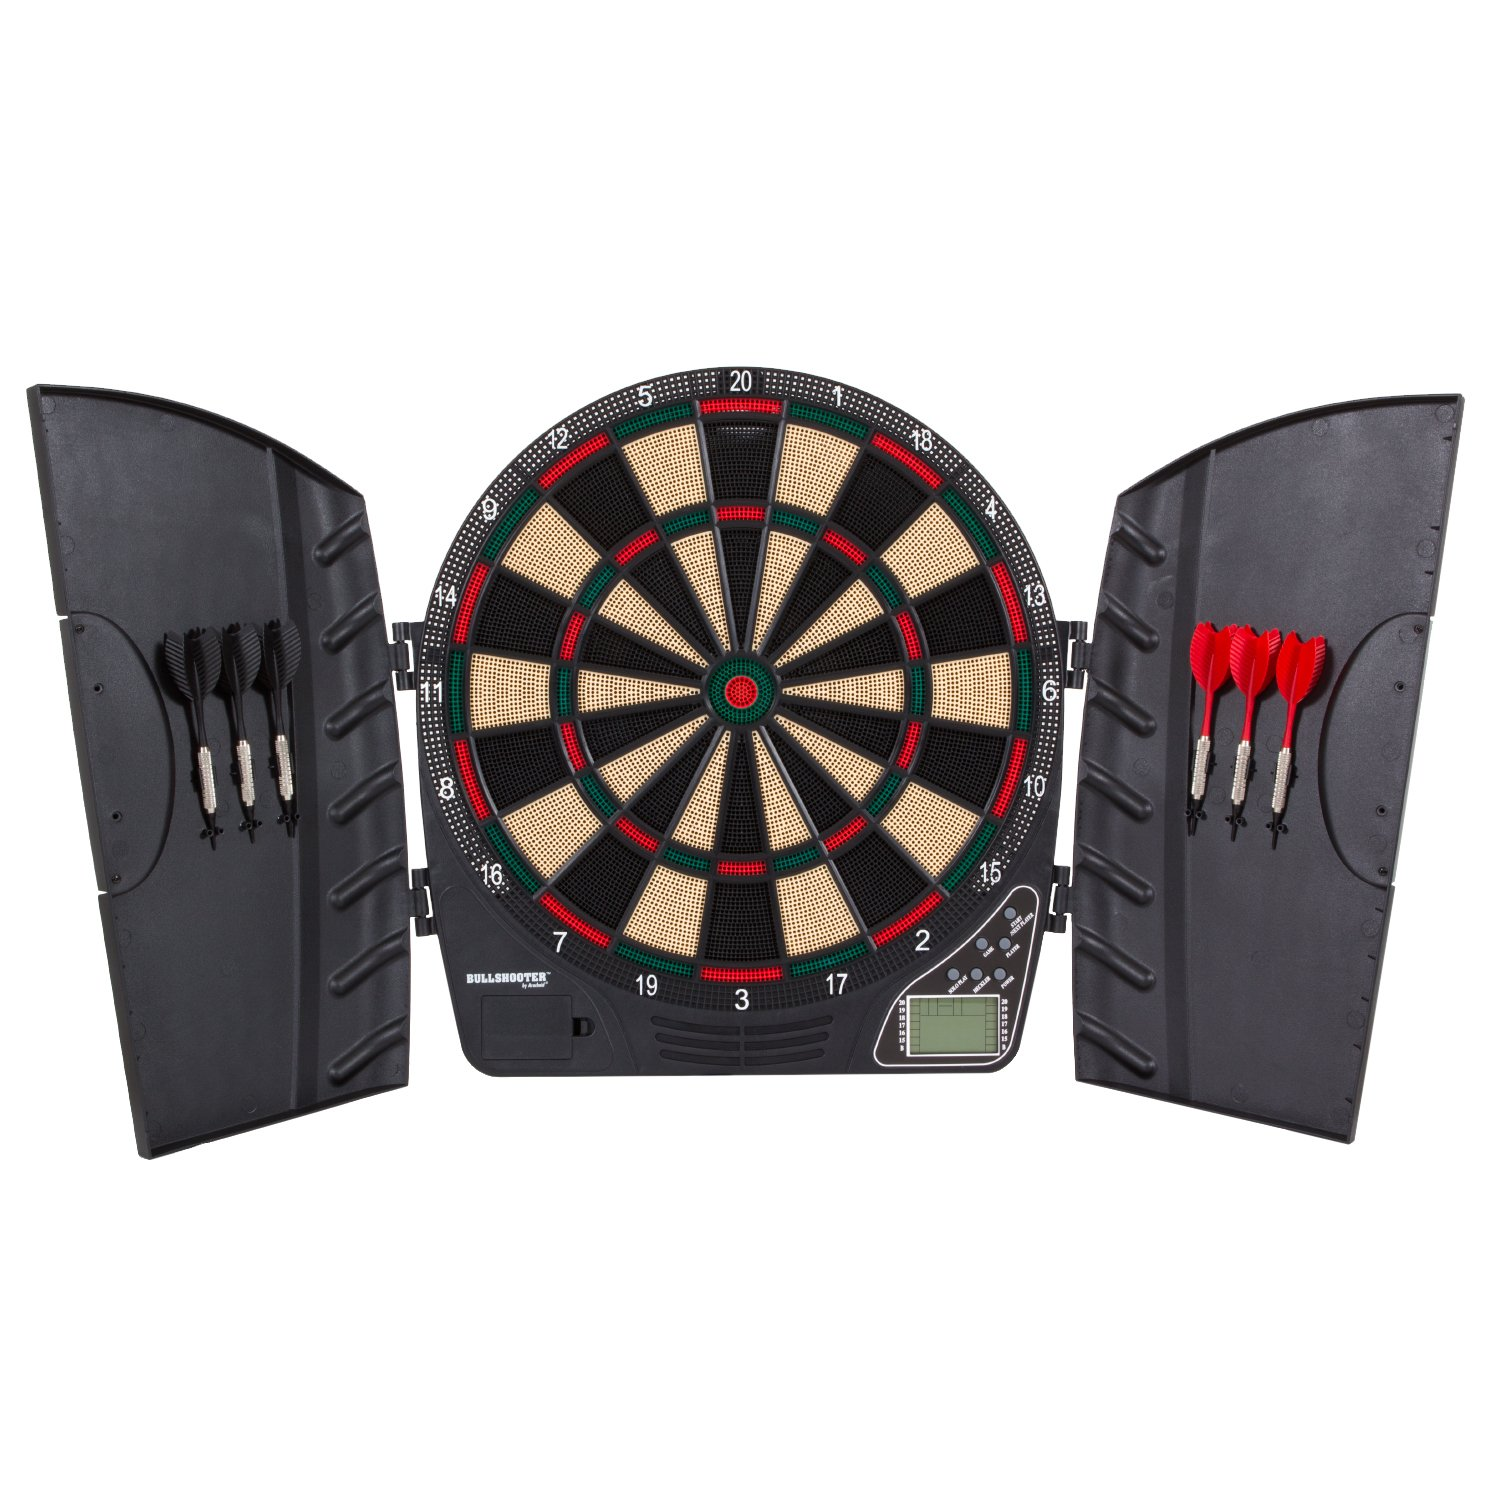 Bullshooter Reactor Electronic Dartboard and Cabinet with LCD display